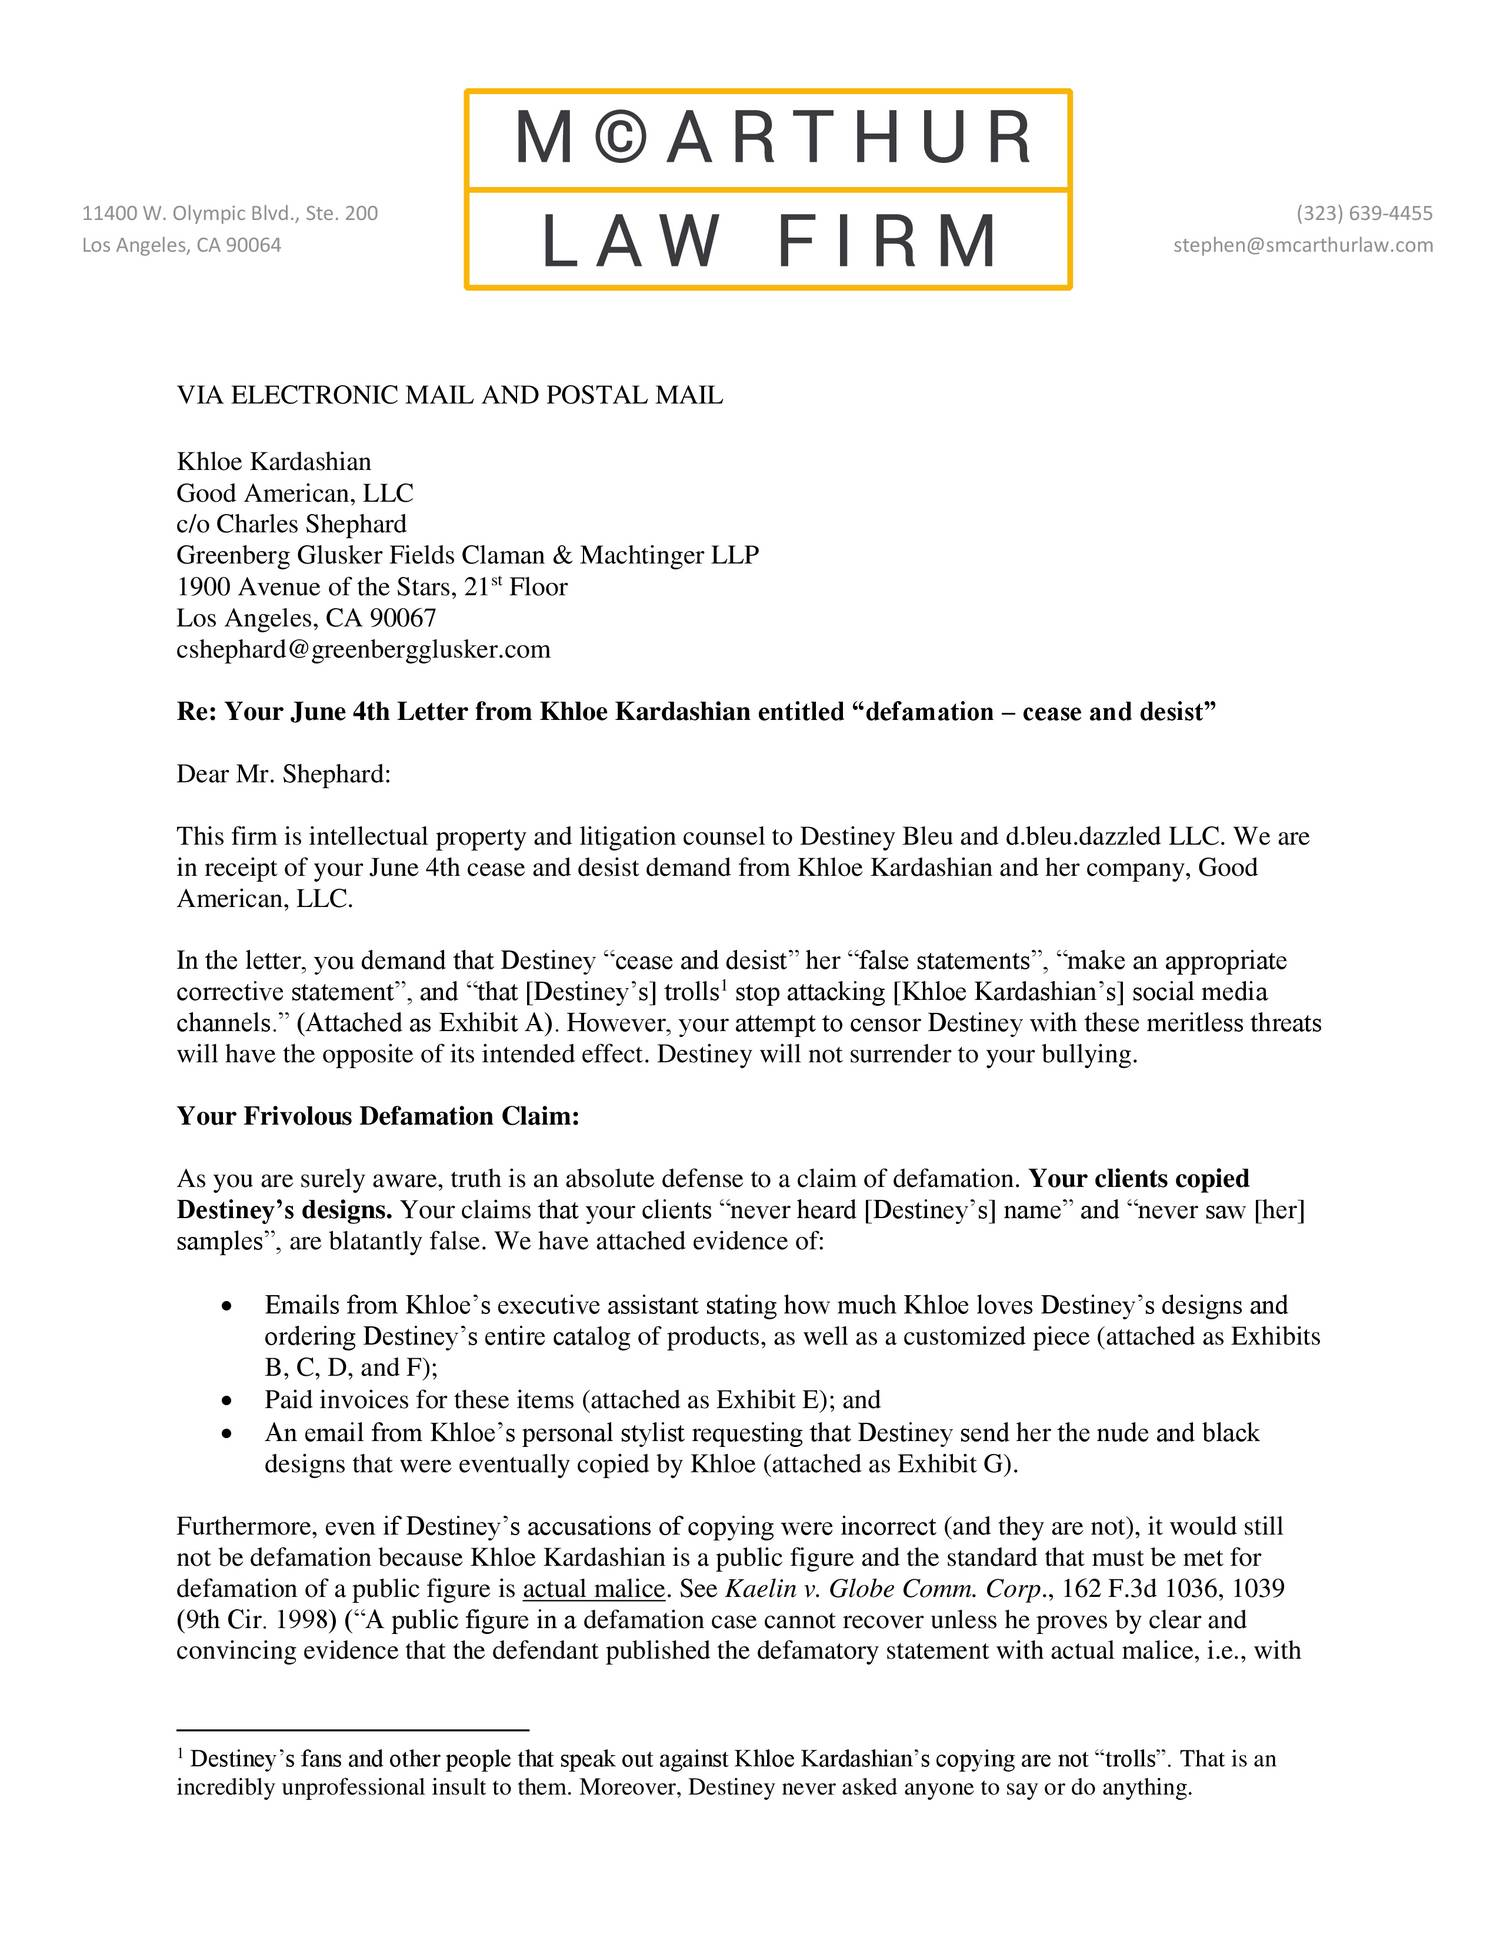 airline cargo claim letter claim letter for wrong